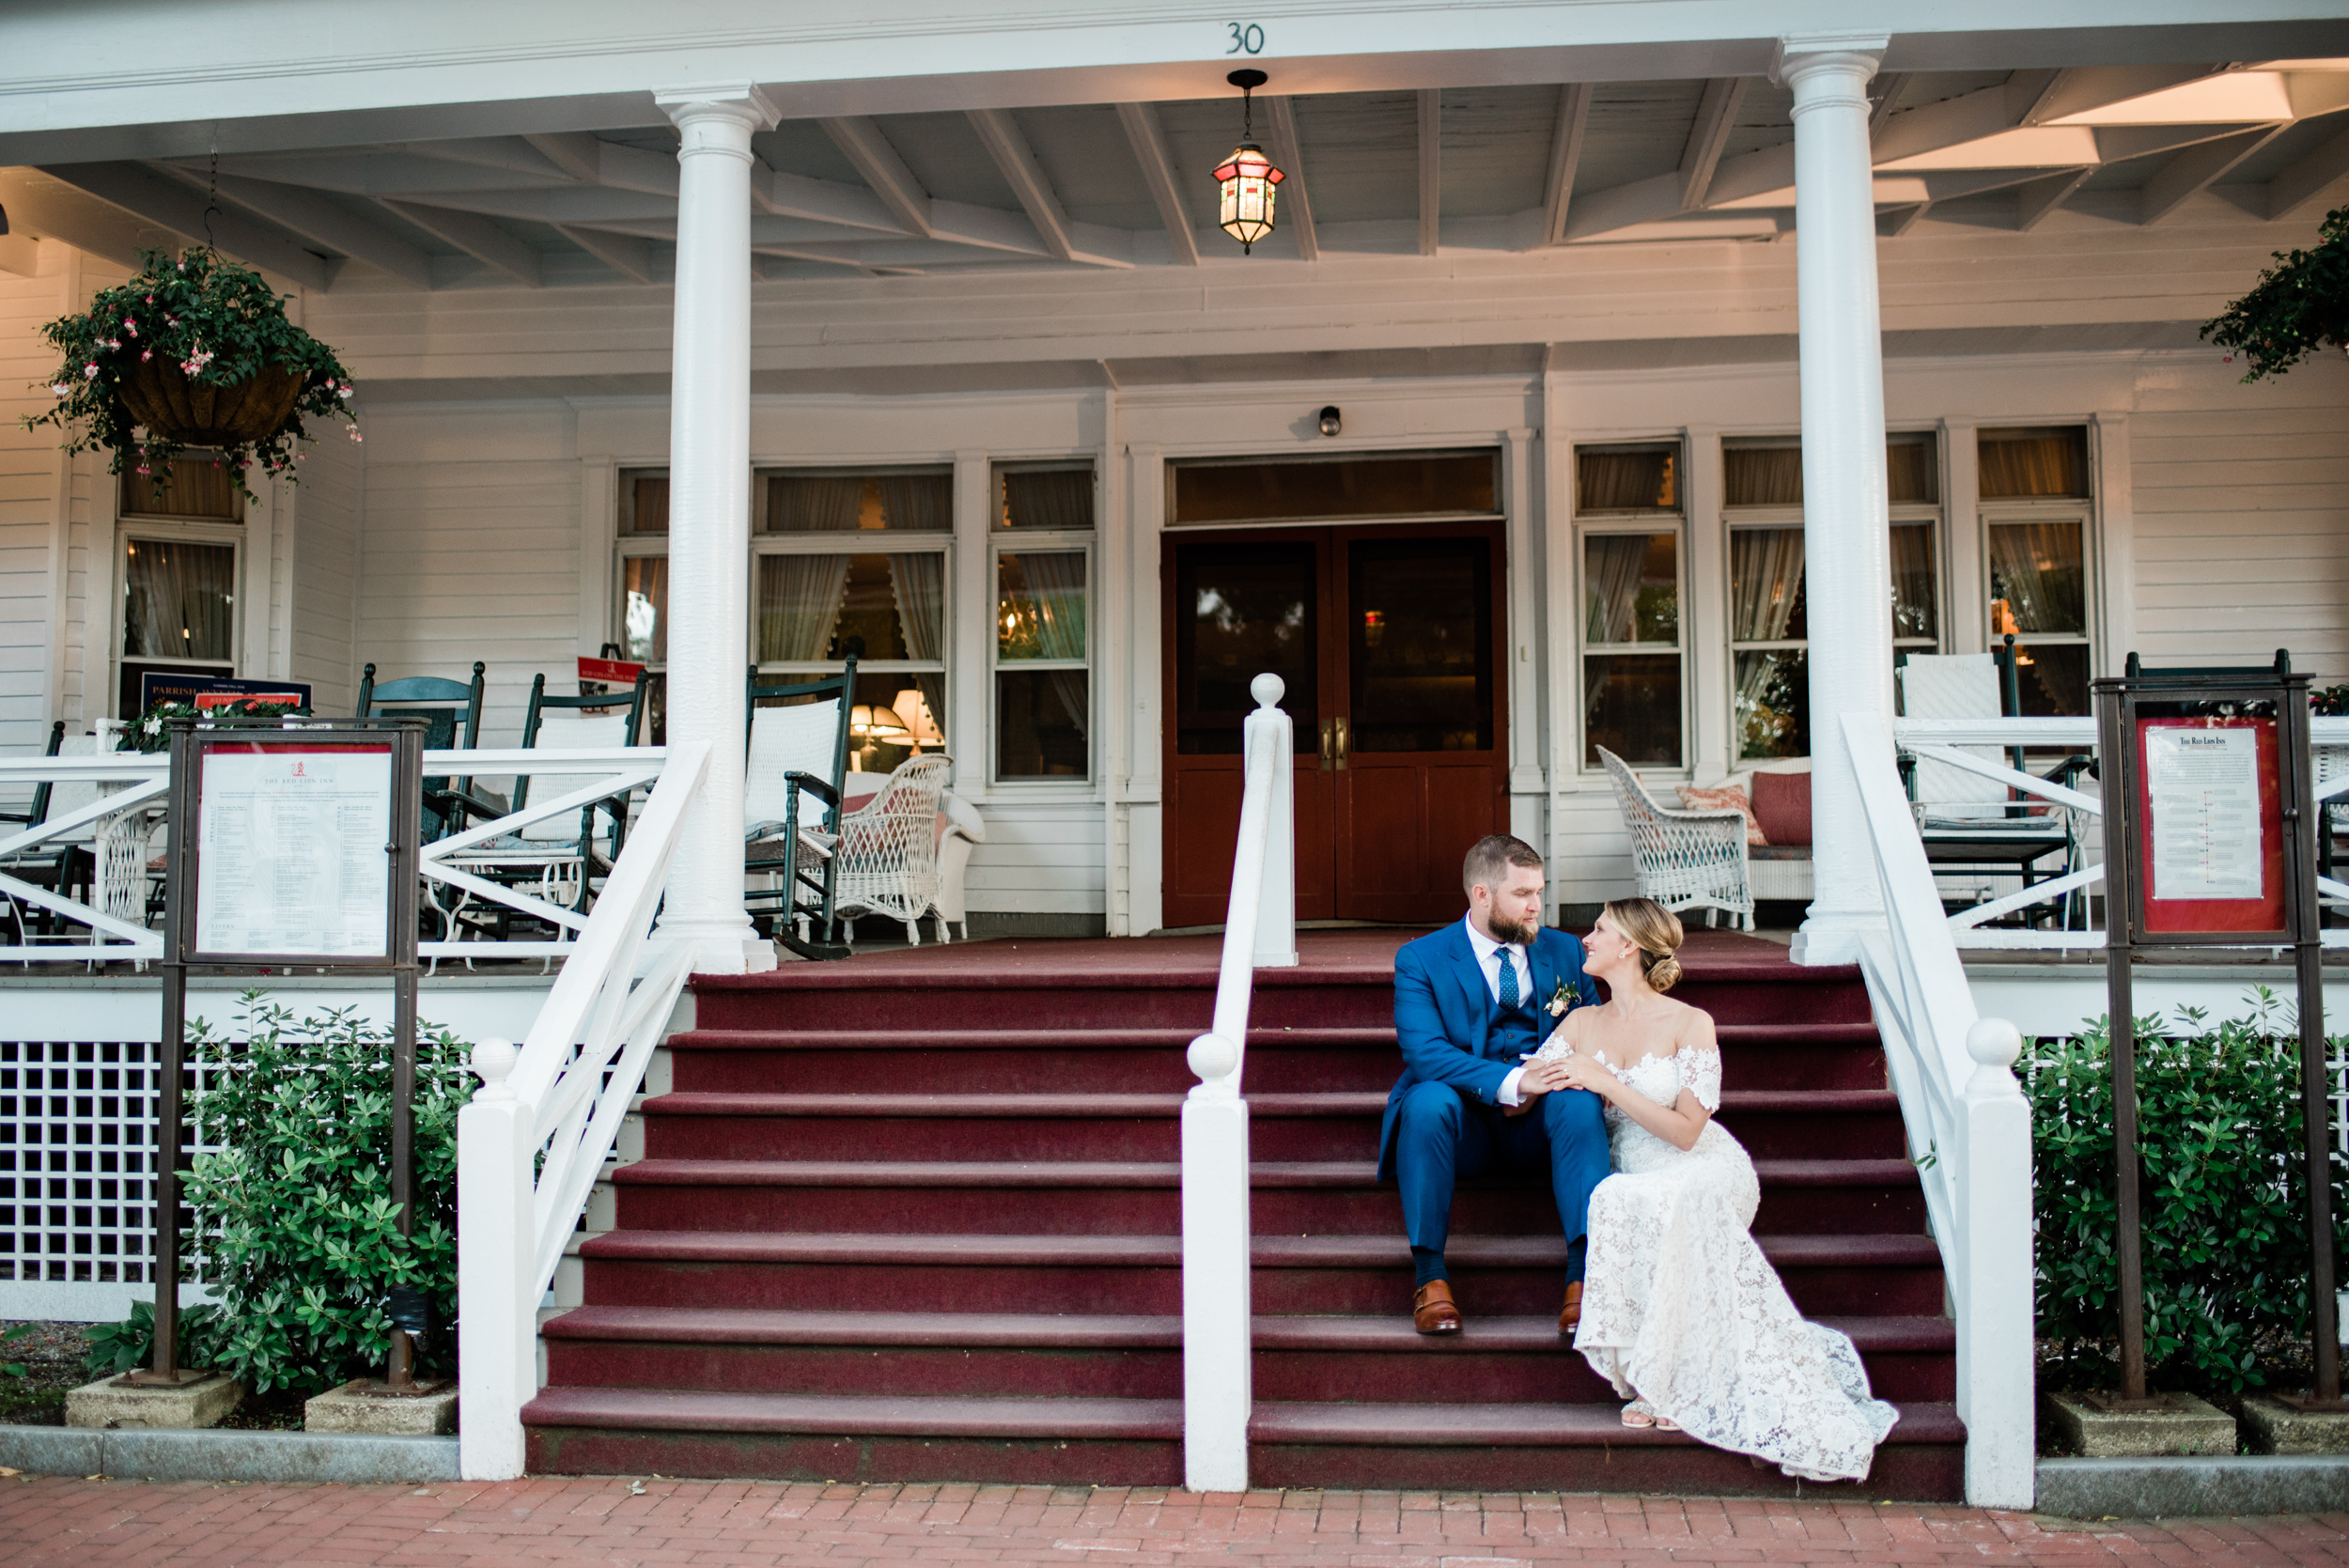 Wedding at the red lion inn